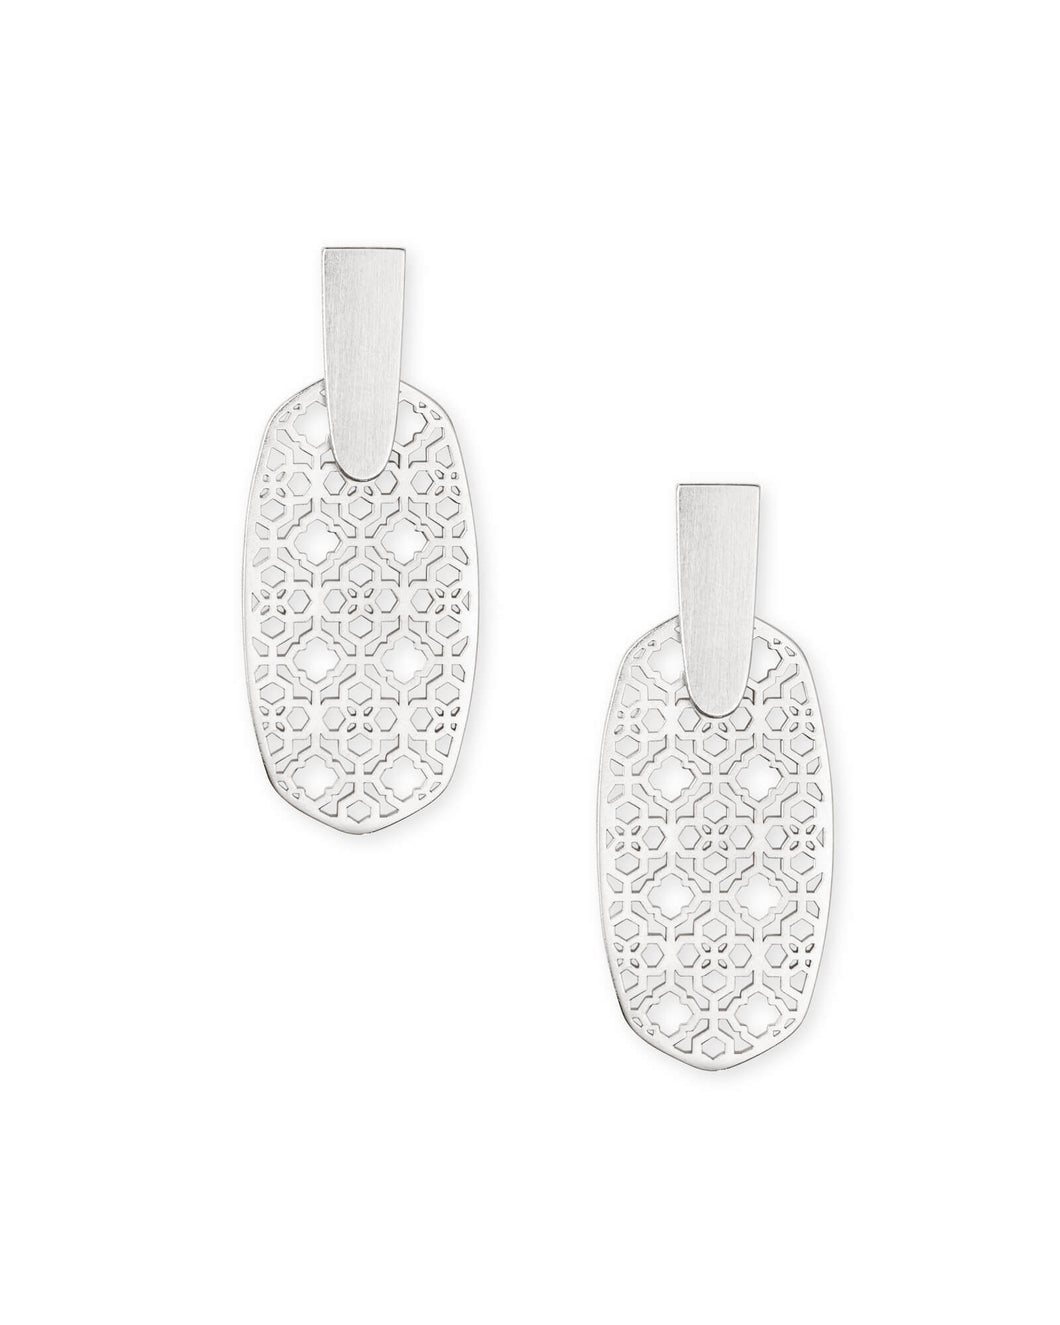 Aragon Bright Silver Drop Earrings in Bright Silver Filigree